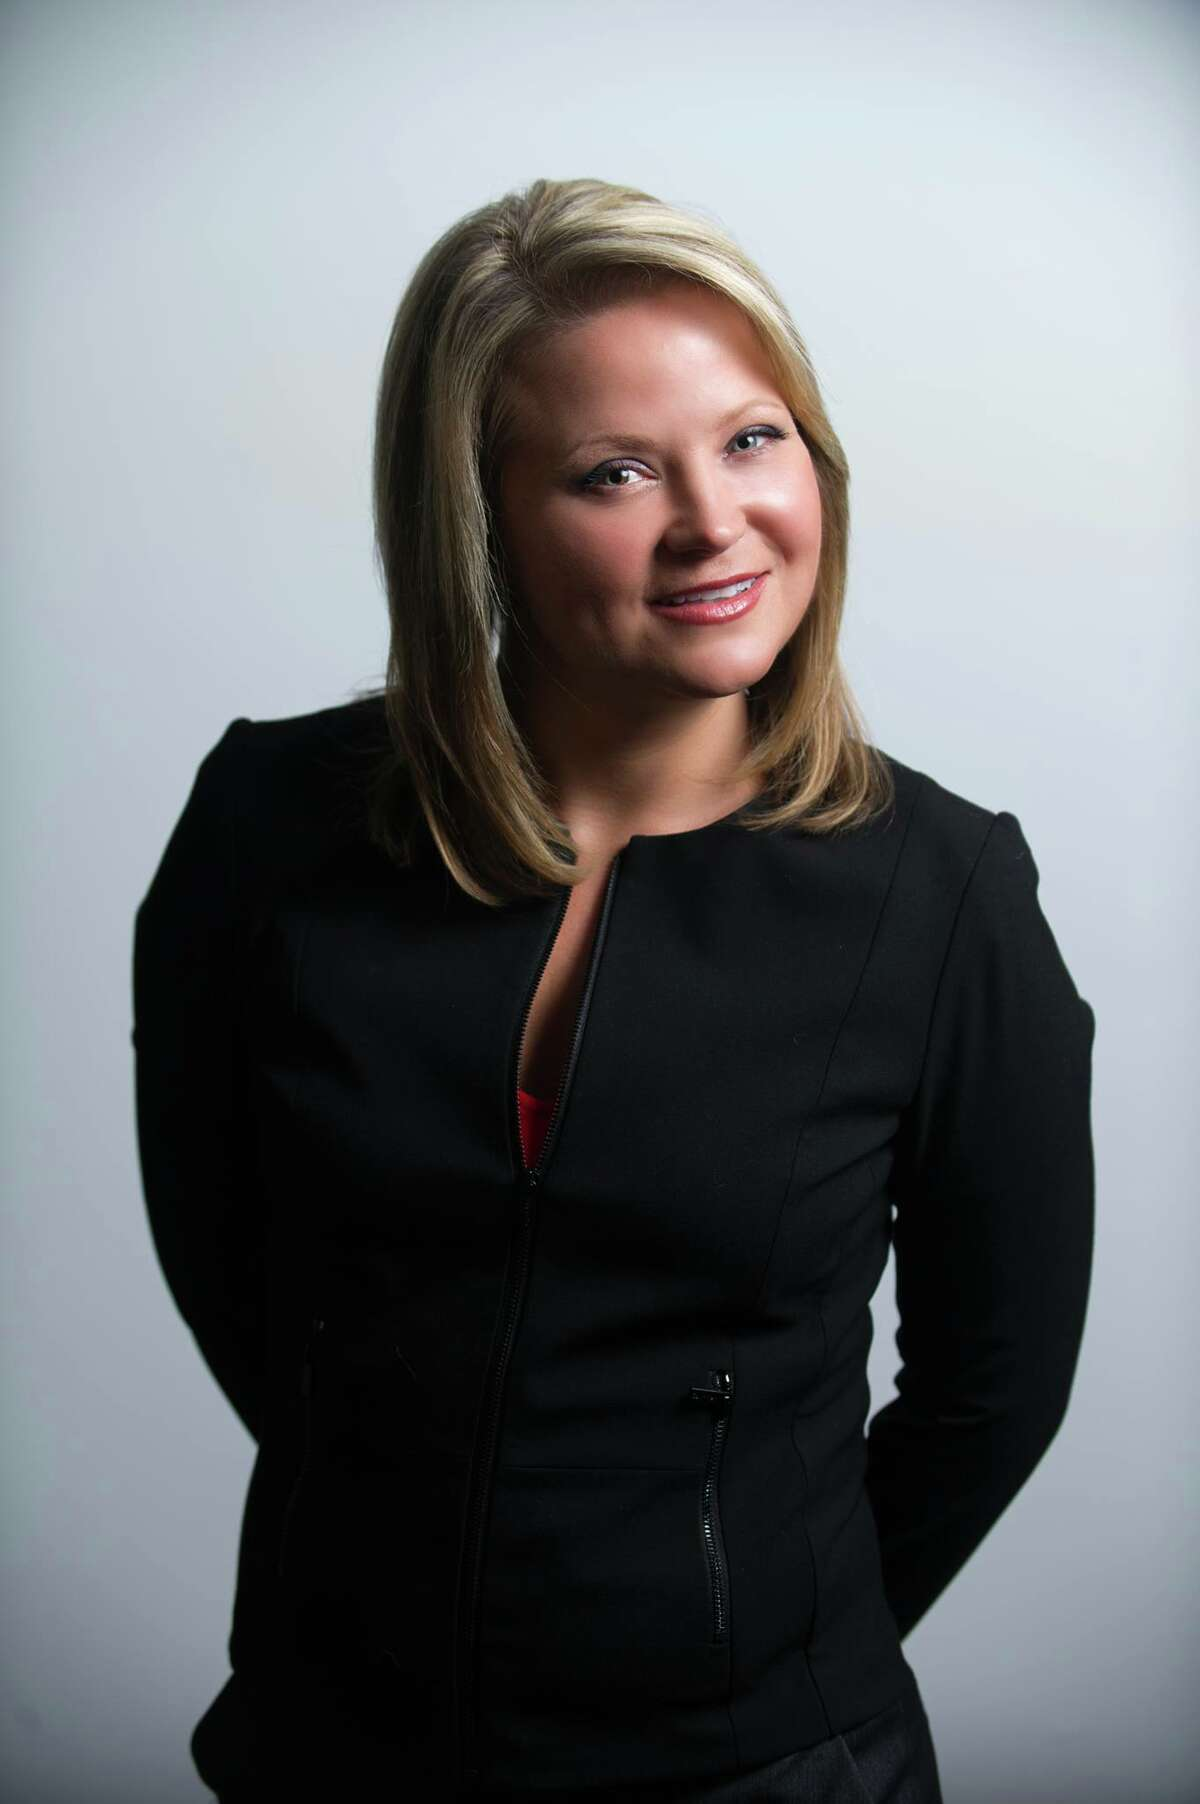 Click through the slideshow for 20 things you don't know about Heather Kovar of CBS6 News.